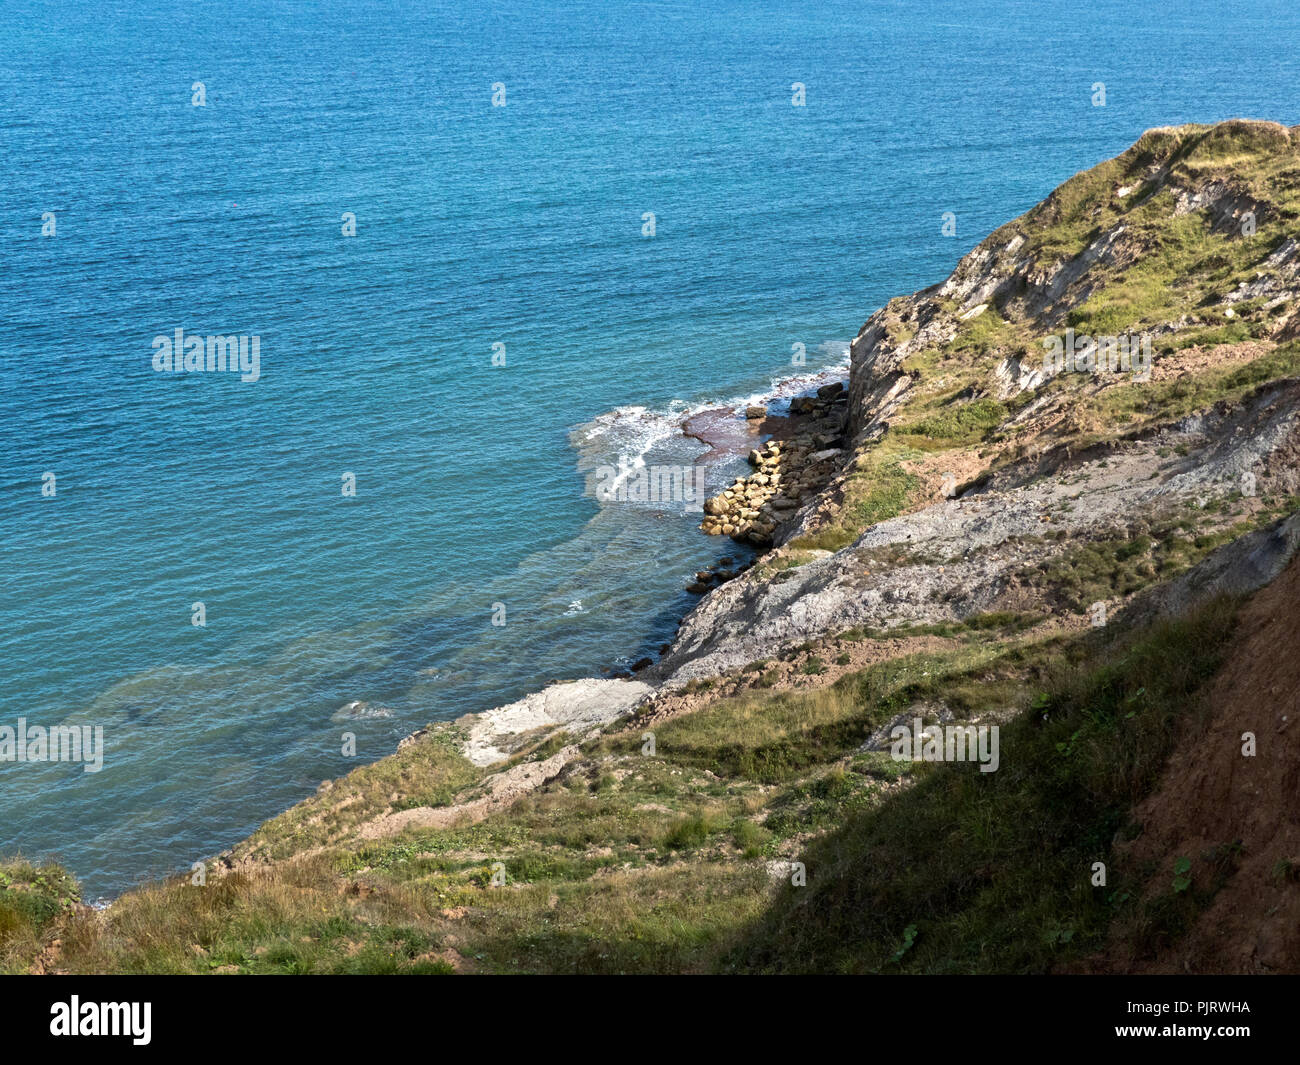 The more resitant rocks do not get eroded so quickly and form a slab or wave cut platform at the base of cliffs in the tidal zone, - Stock Image